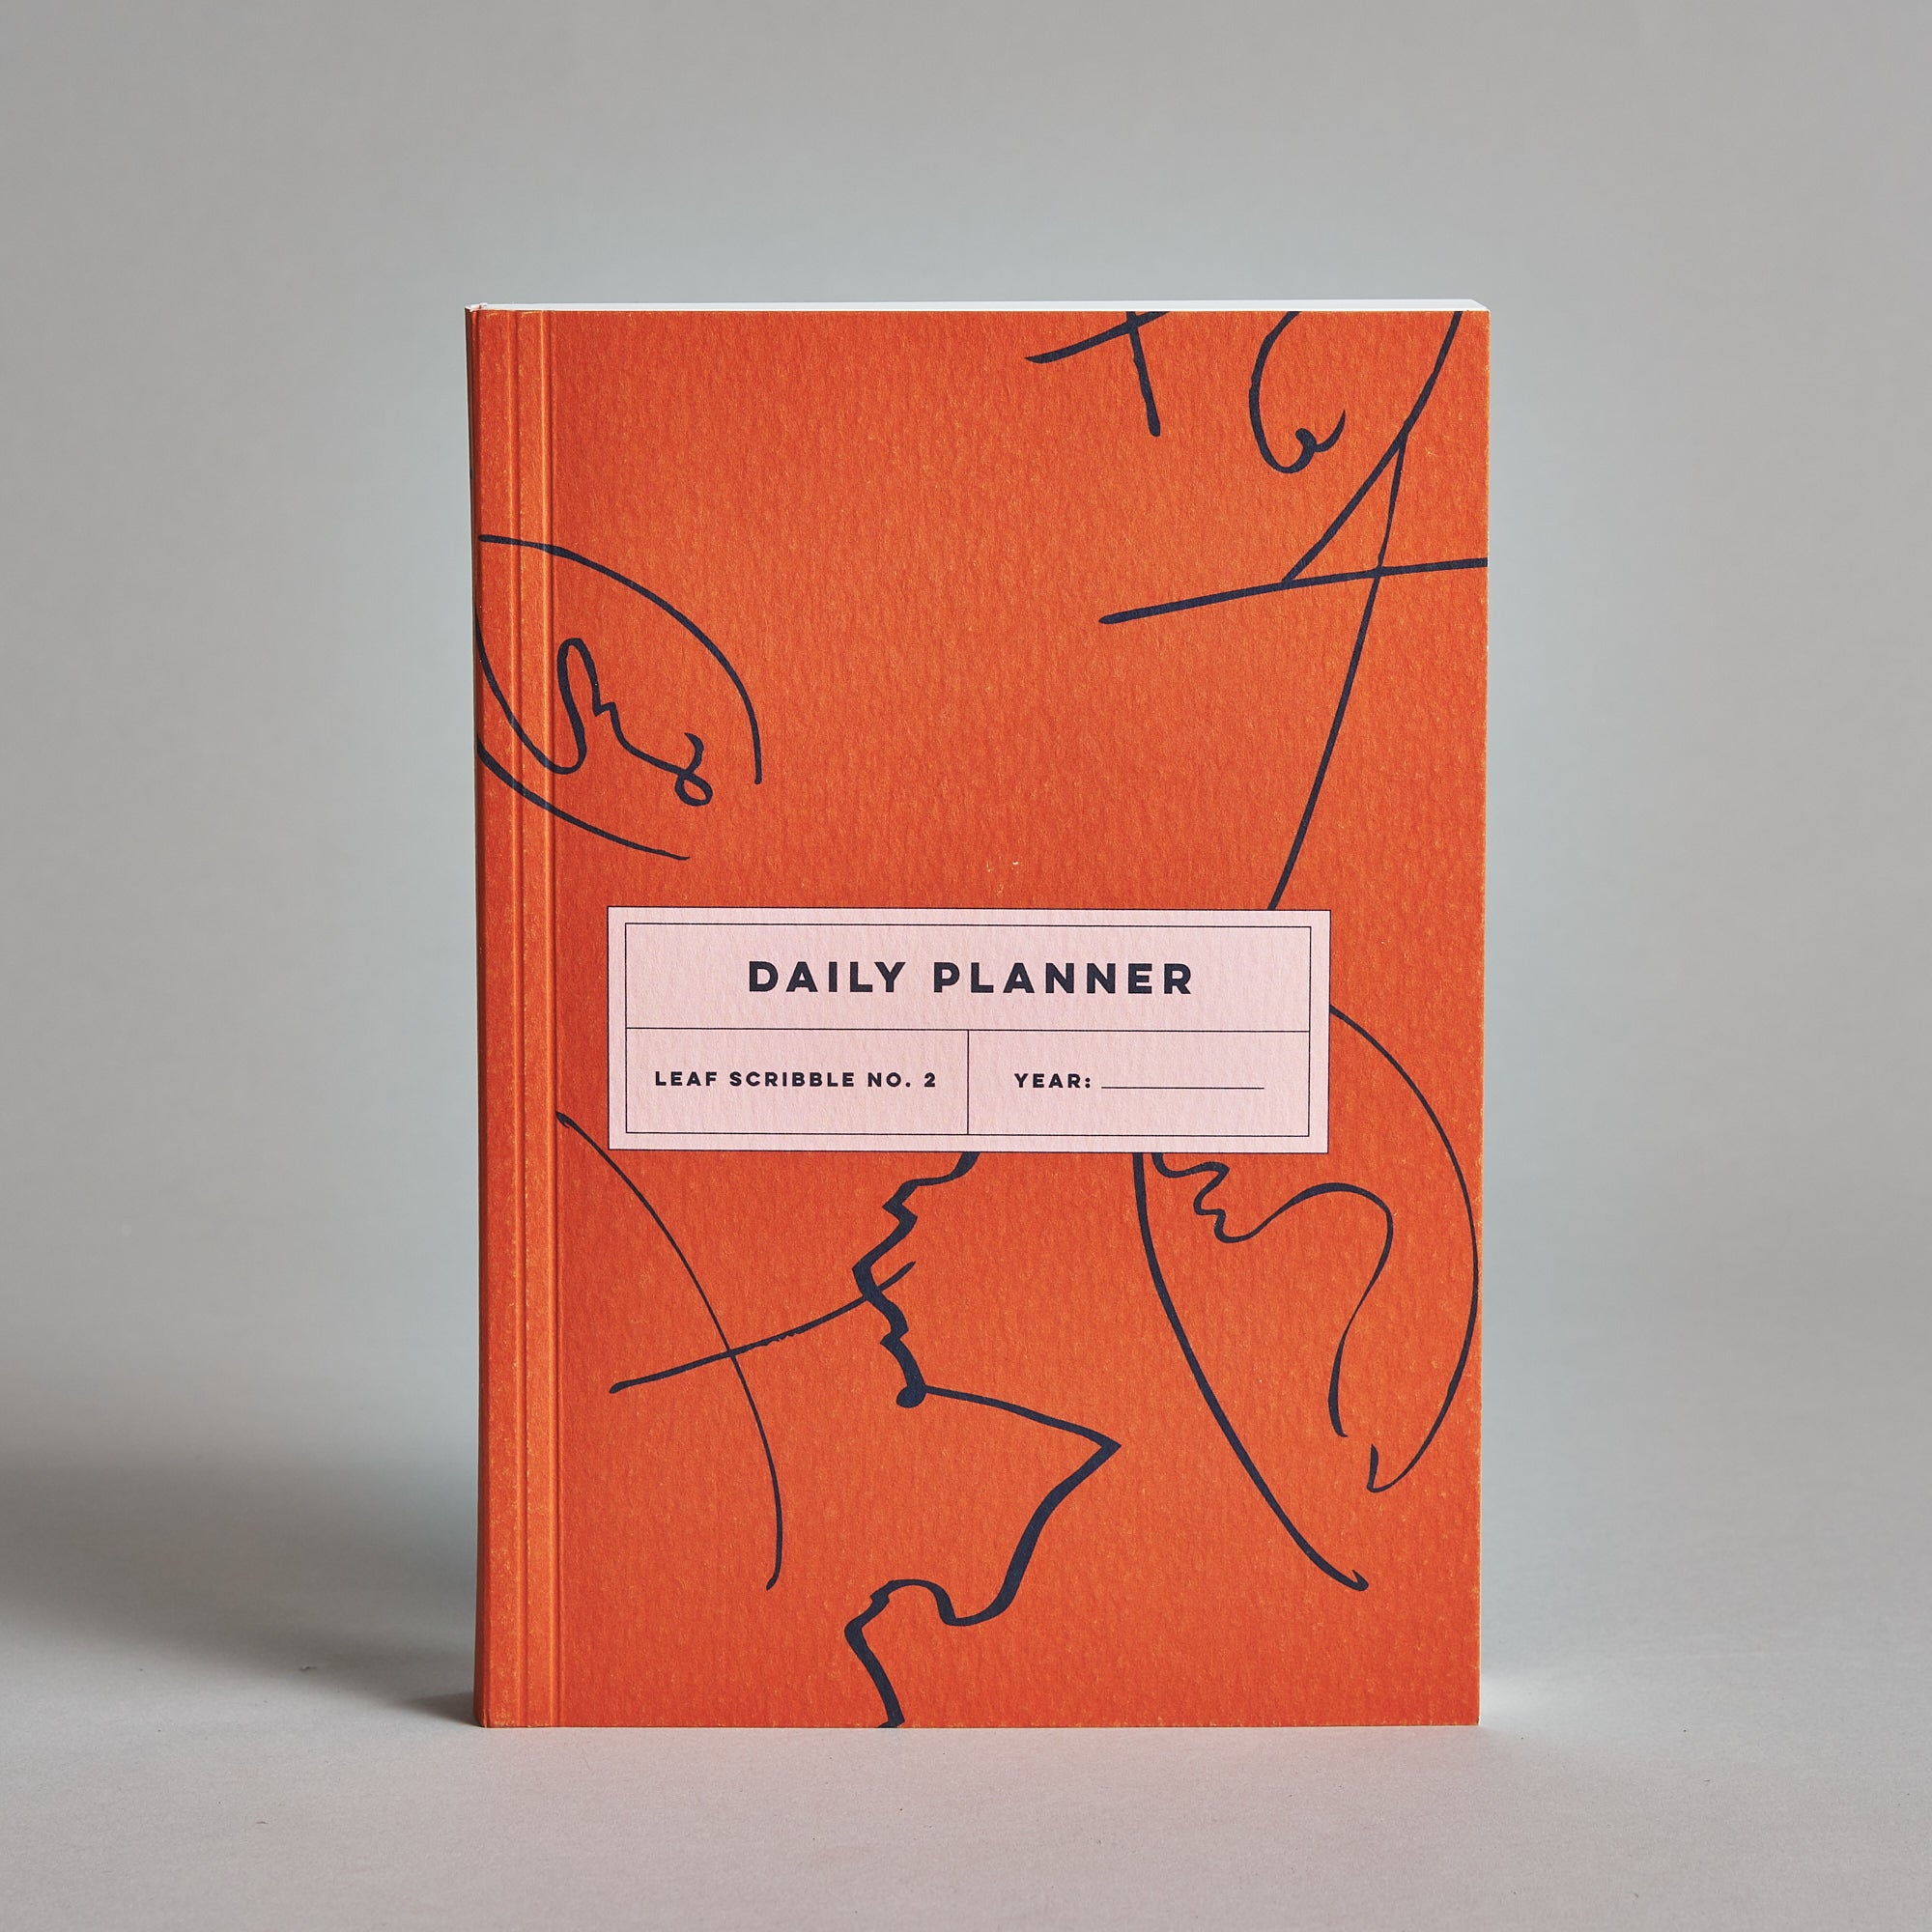 image relating to Dailyplanner called Leaf Scribble No. 2 Day-to-day Planner